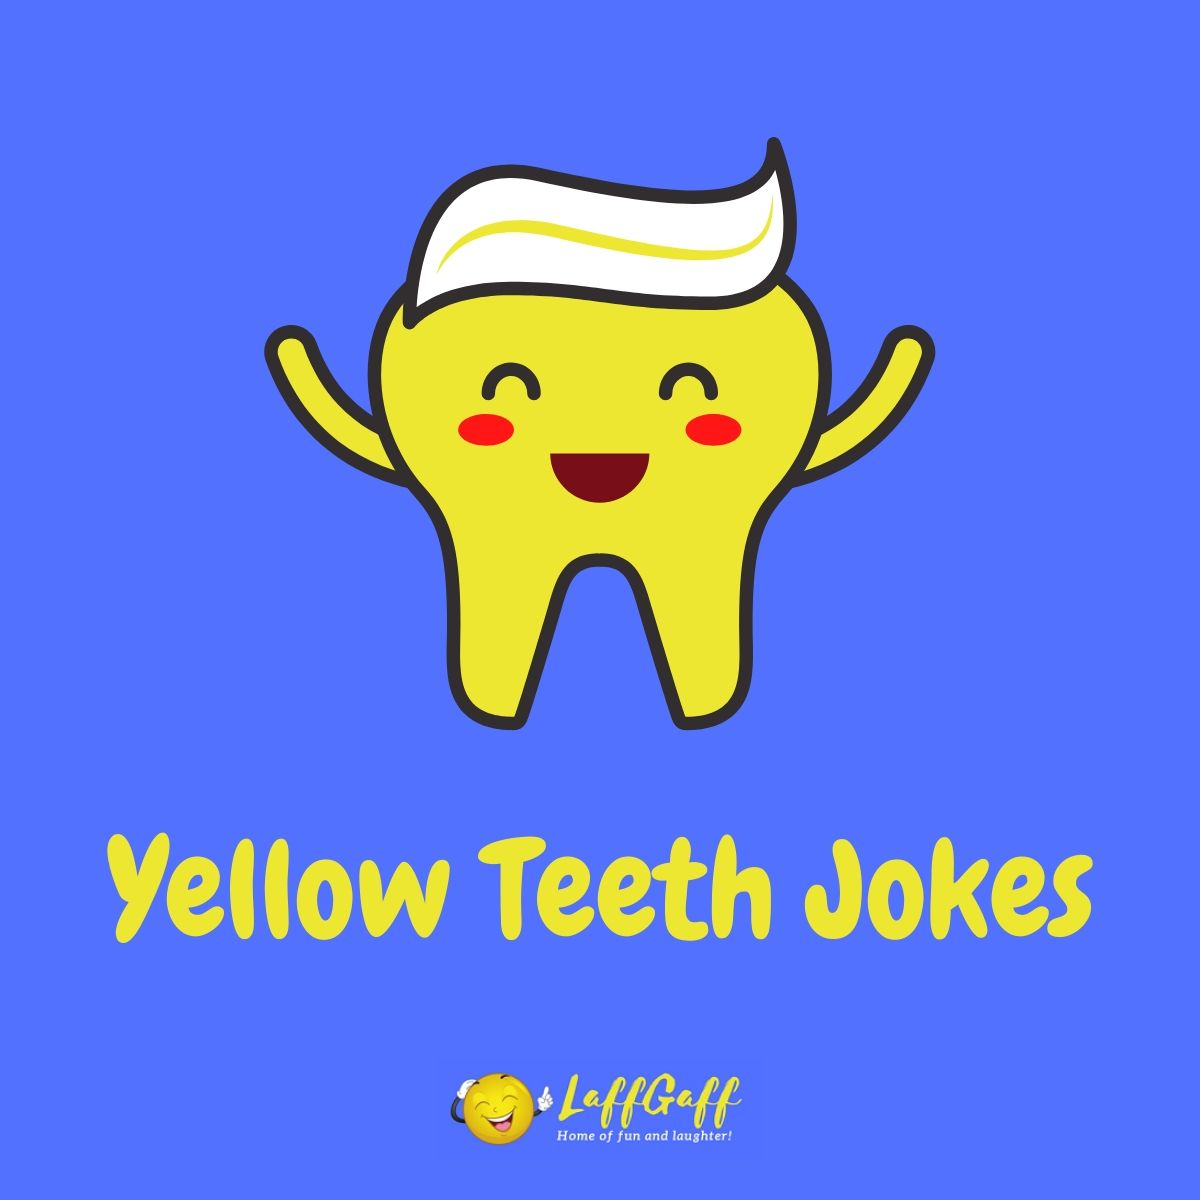 Featured image for a page of yellow teeth jokes.